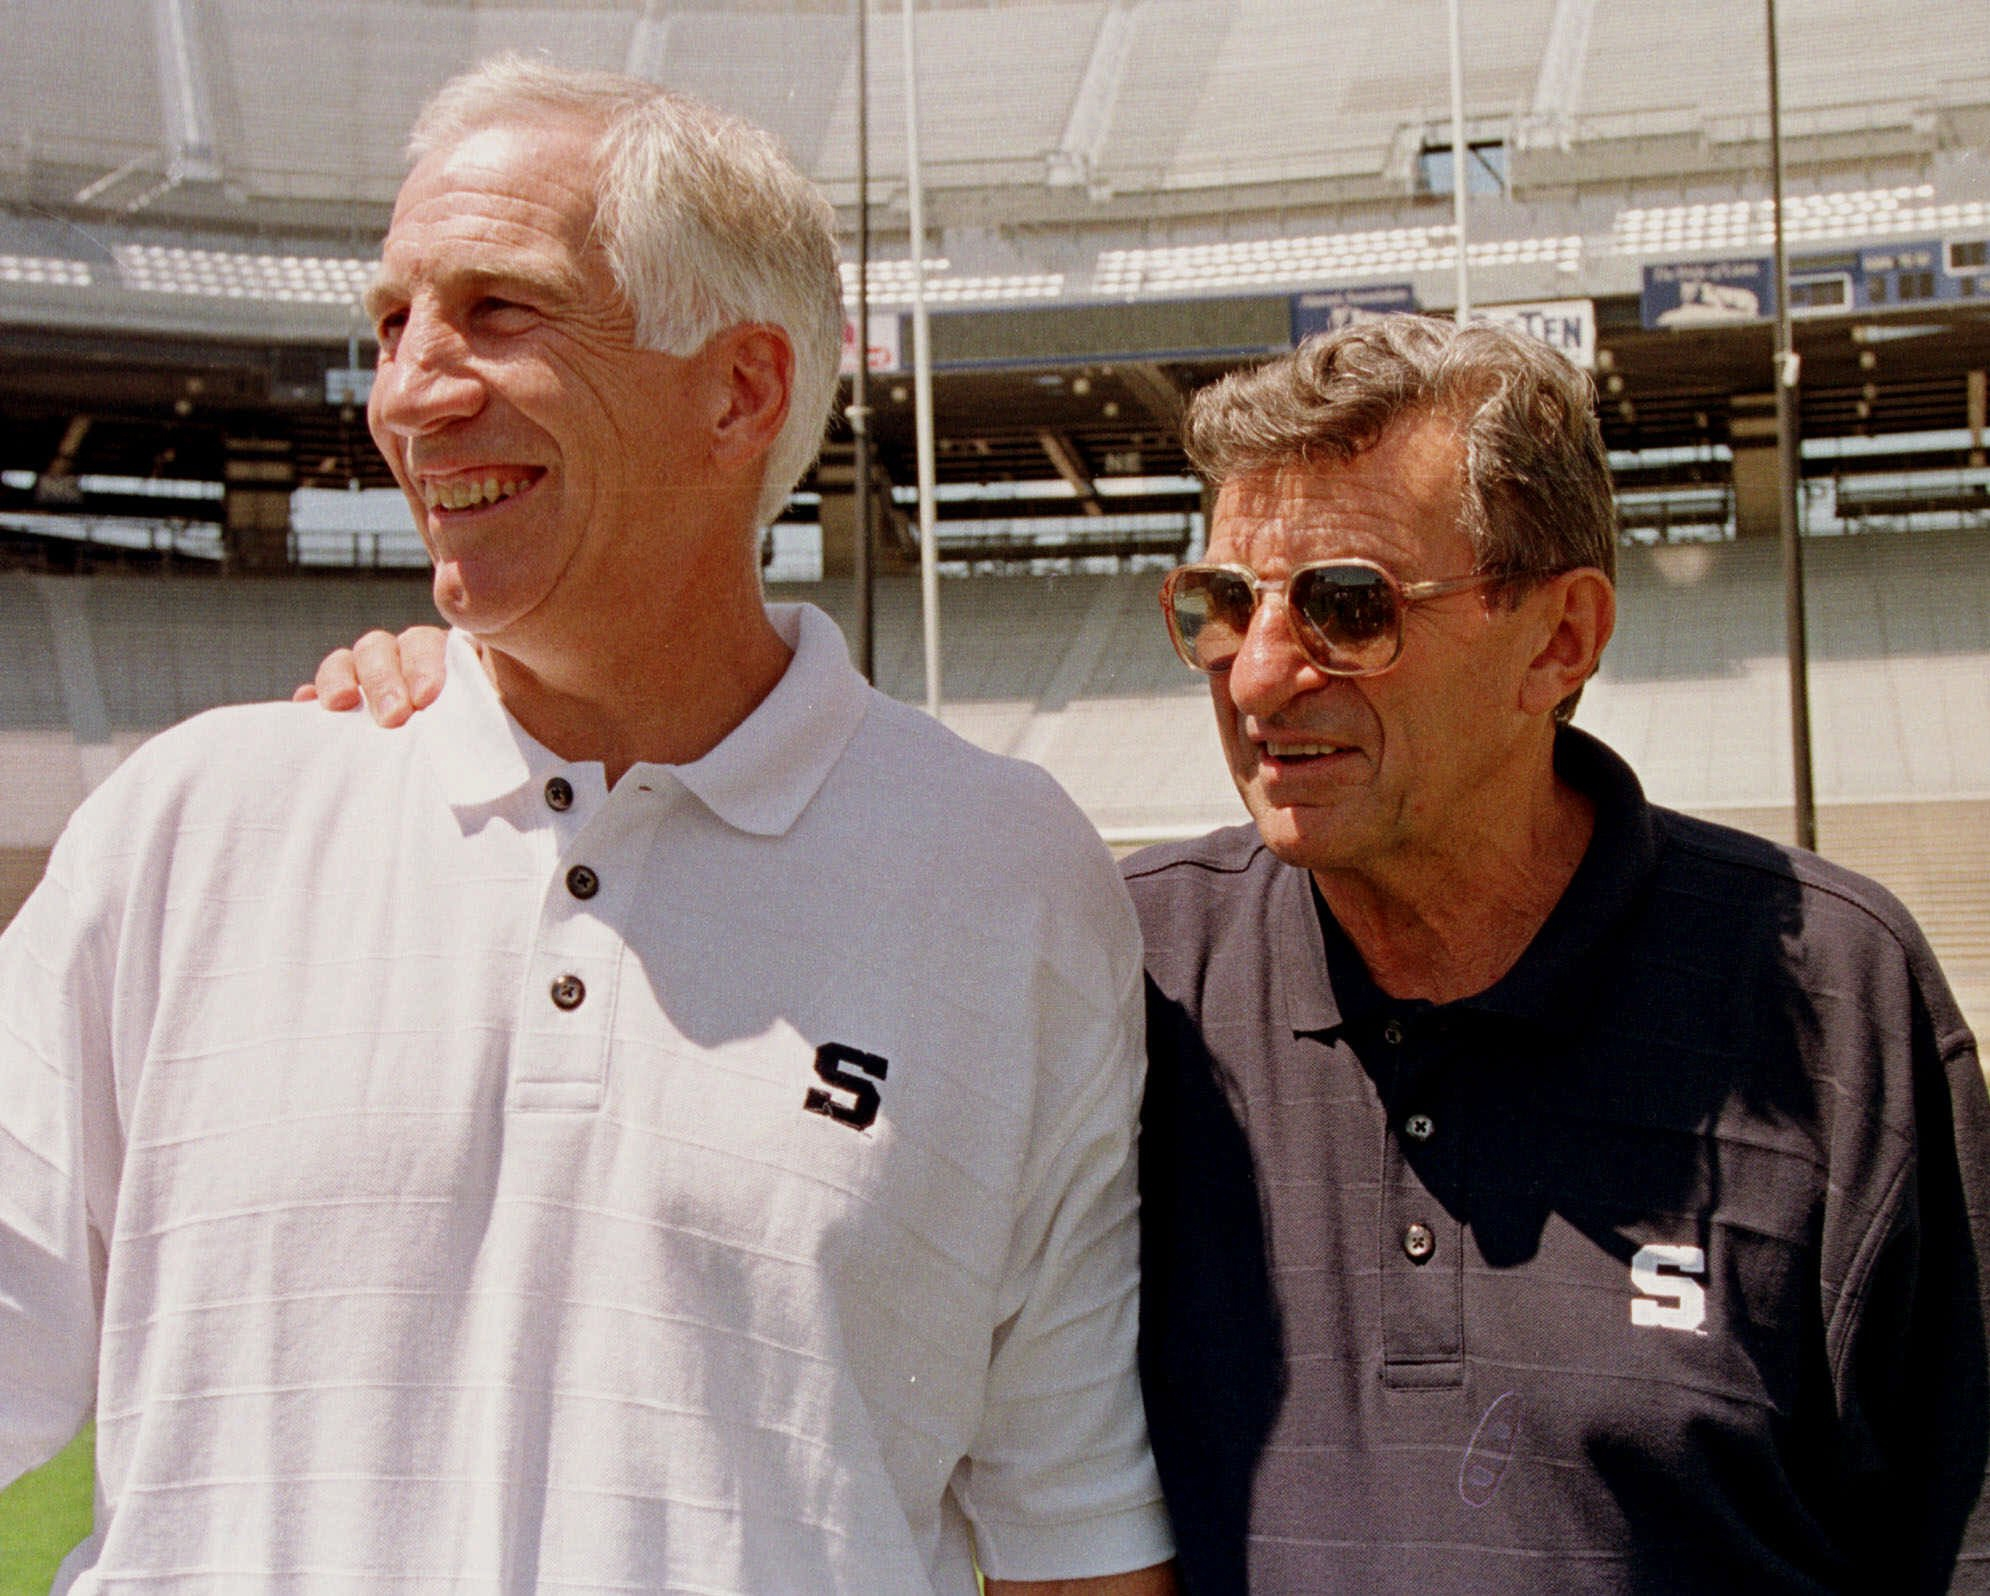 FILE - In this Aug. 6, 1999, file photo, Penn State head football coach Joe Paterno, right, poses with his defensive coordinator Jerry Sandusky during Penn State Media Day at State College, Pa. An amended complaint by the family and estate of Joe Paterno